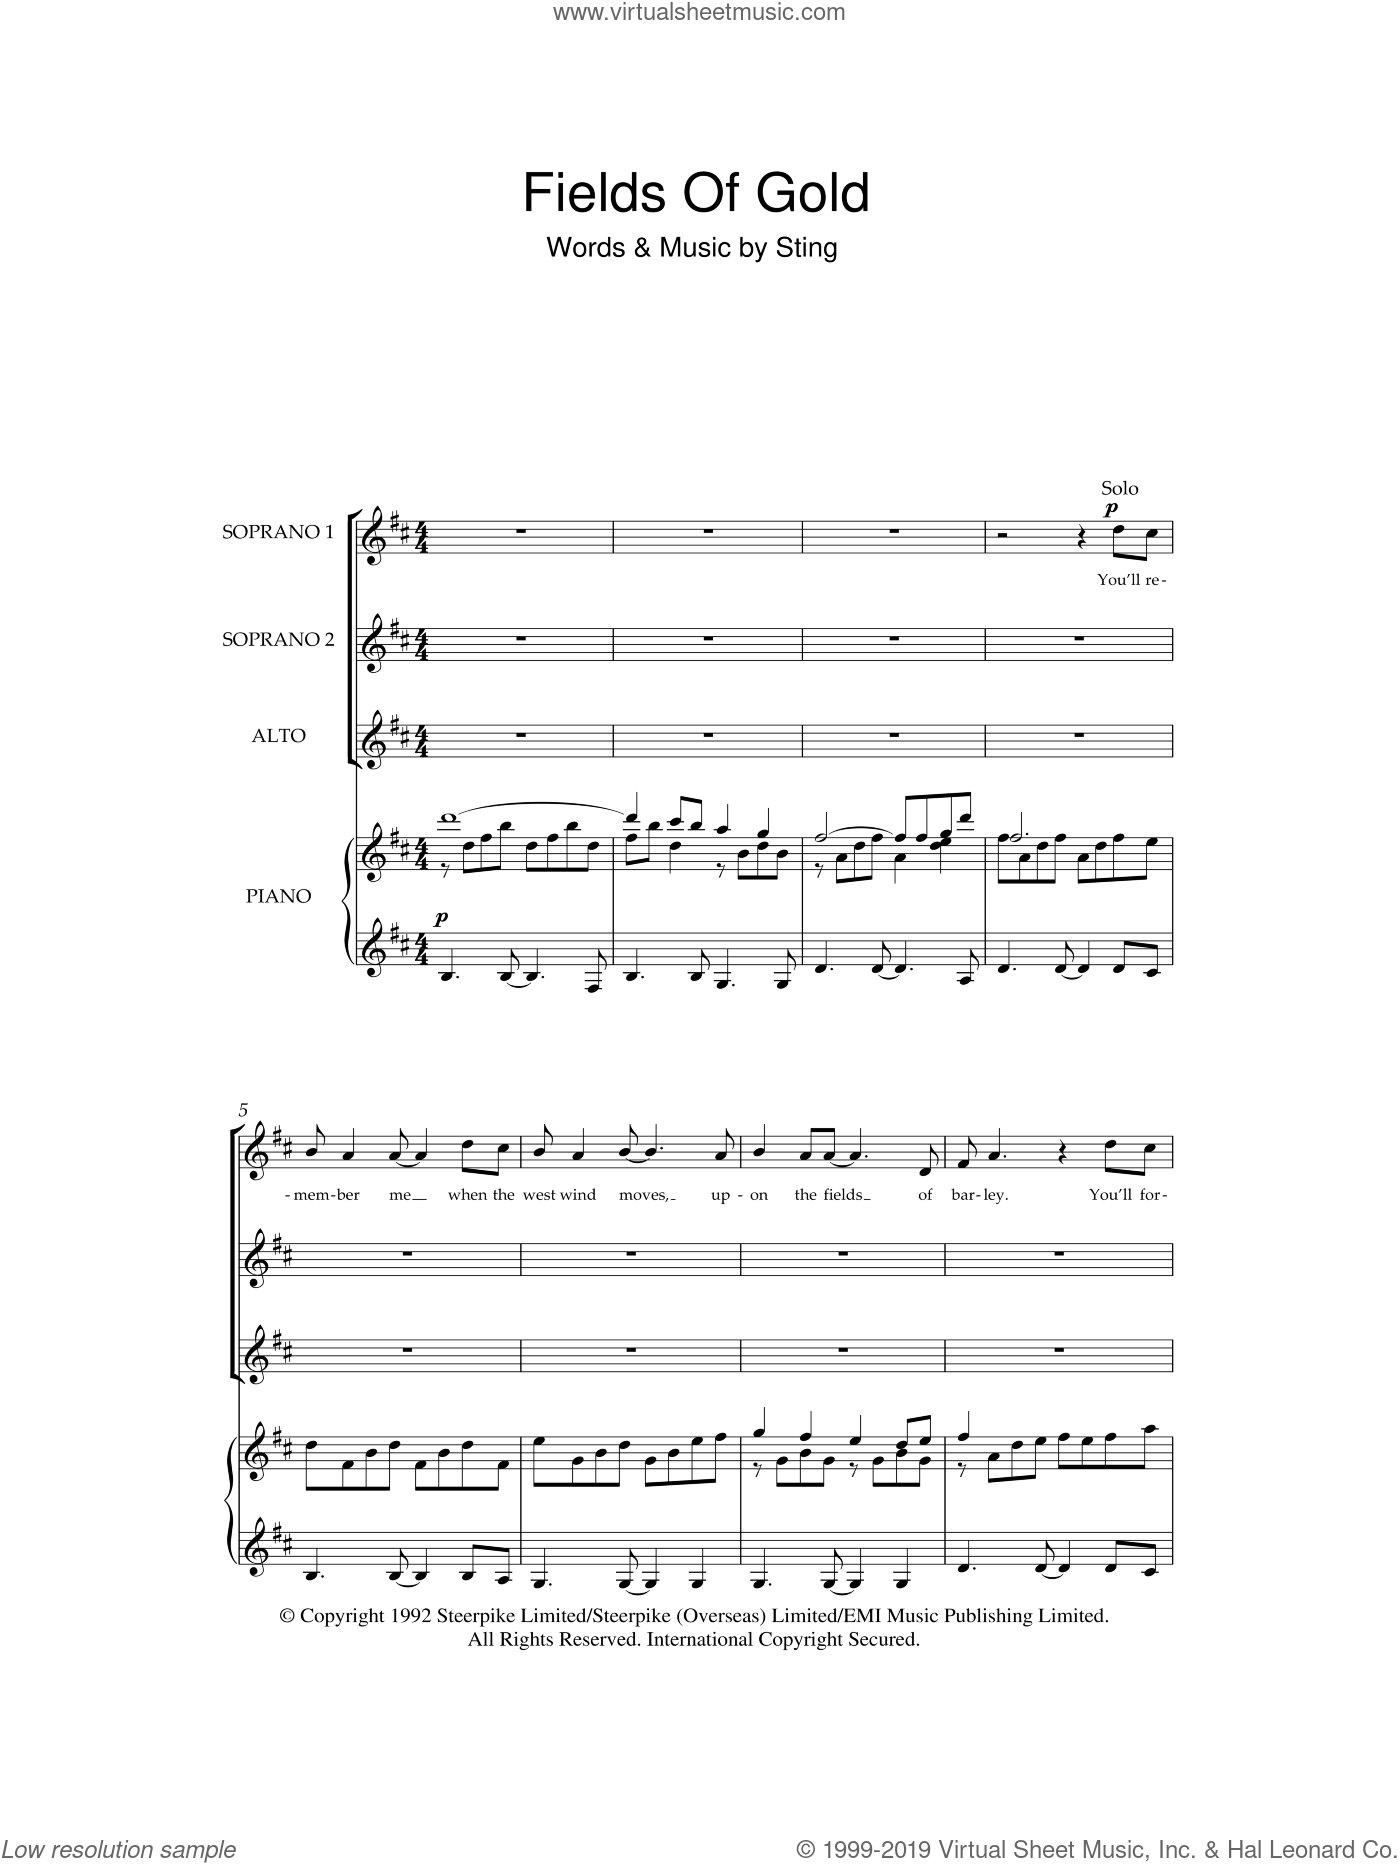 Fields Of Gold sheet music for choir (soprano voice, alto voice, choir) by Sting. Score Image Preview.